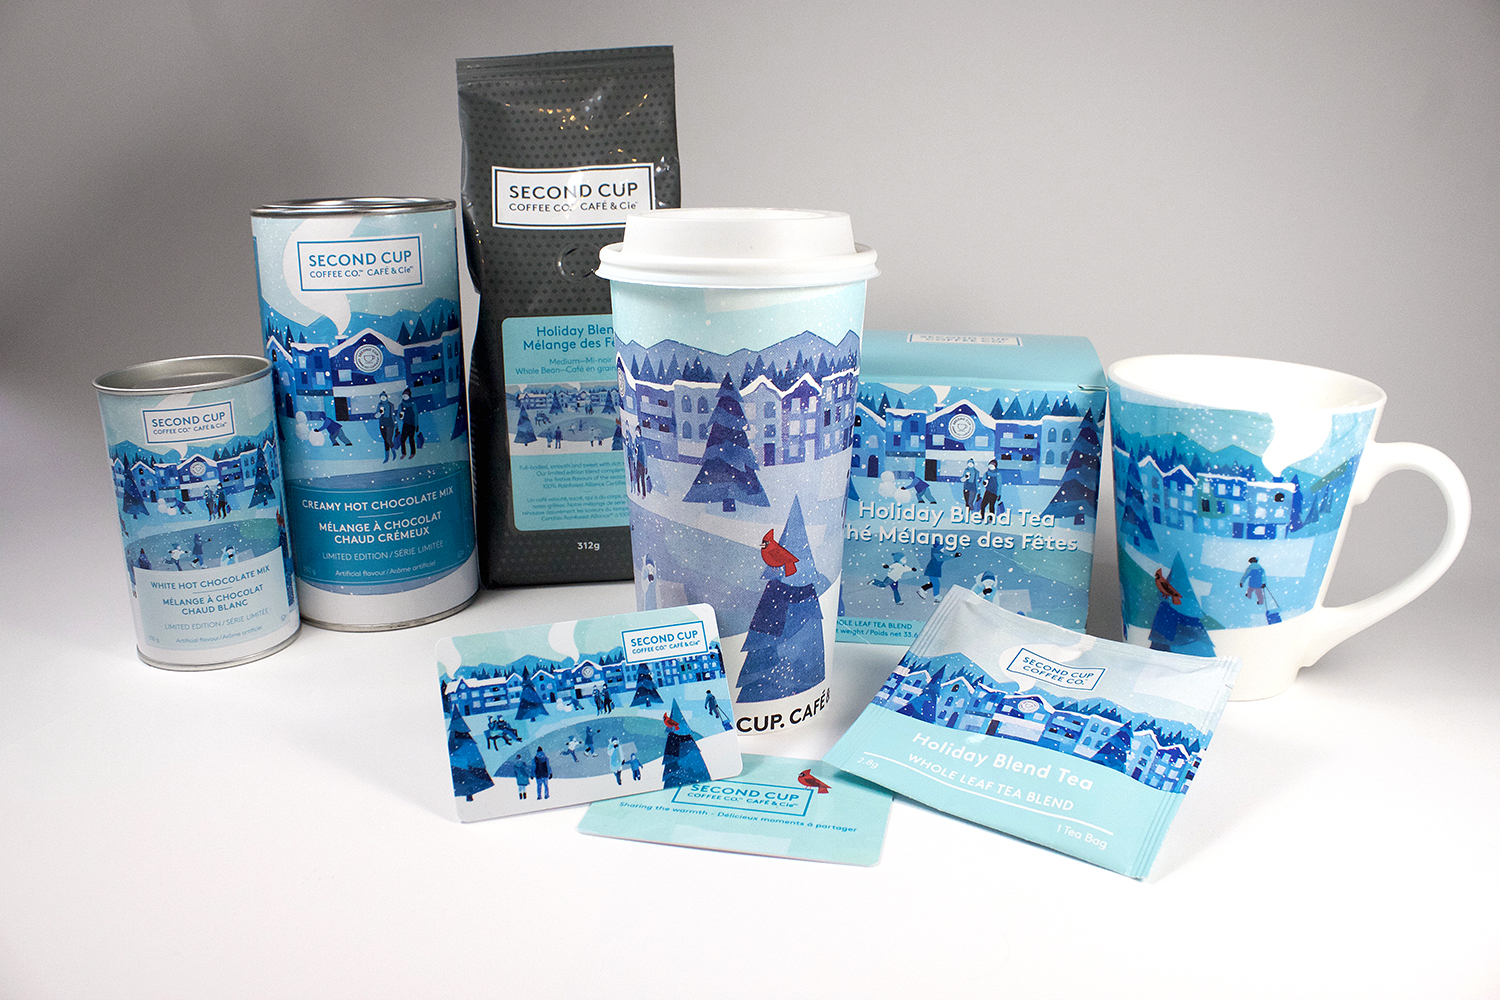 SecondCup_Products_lowres-2.jpg